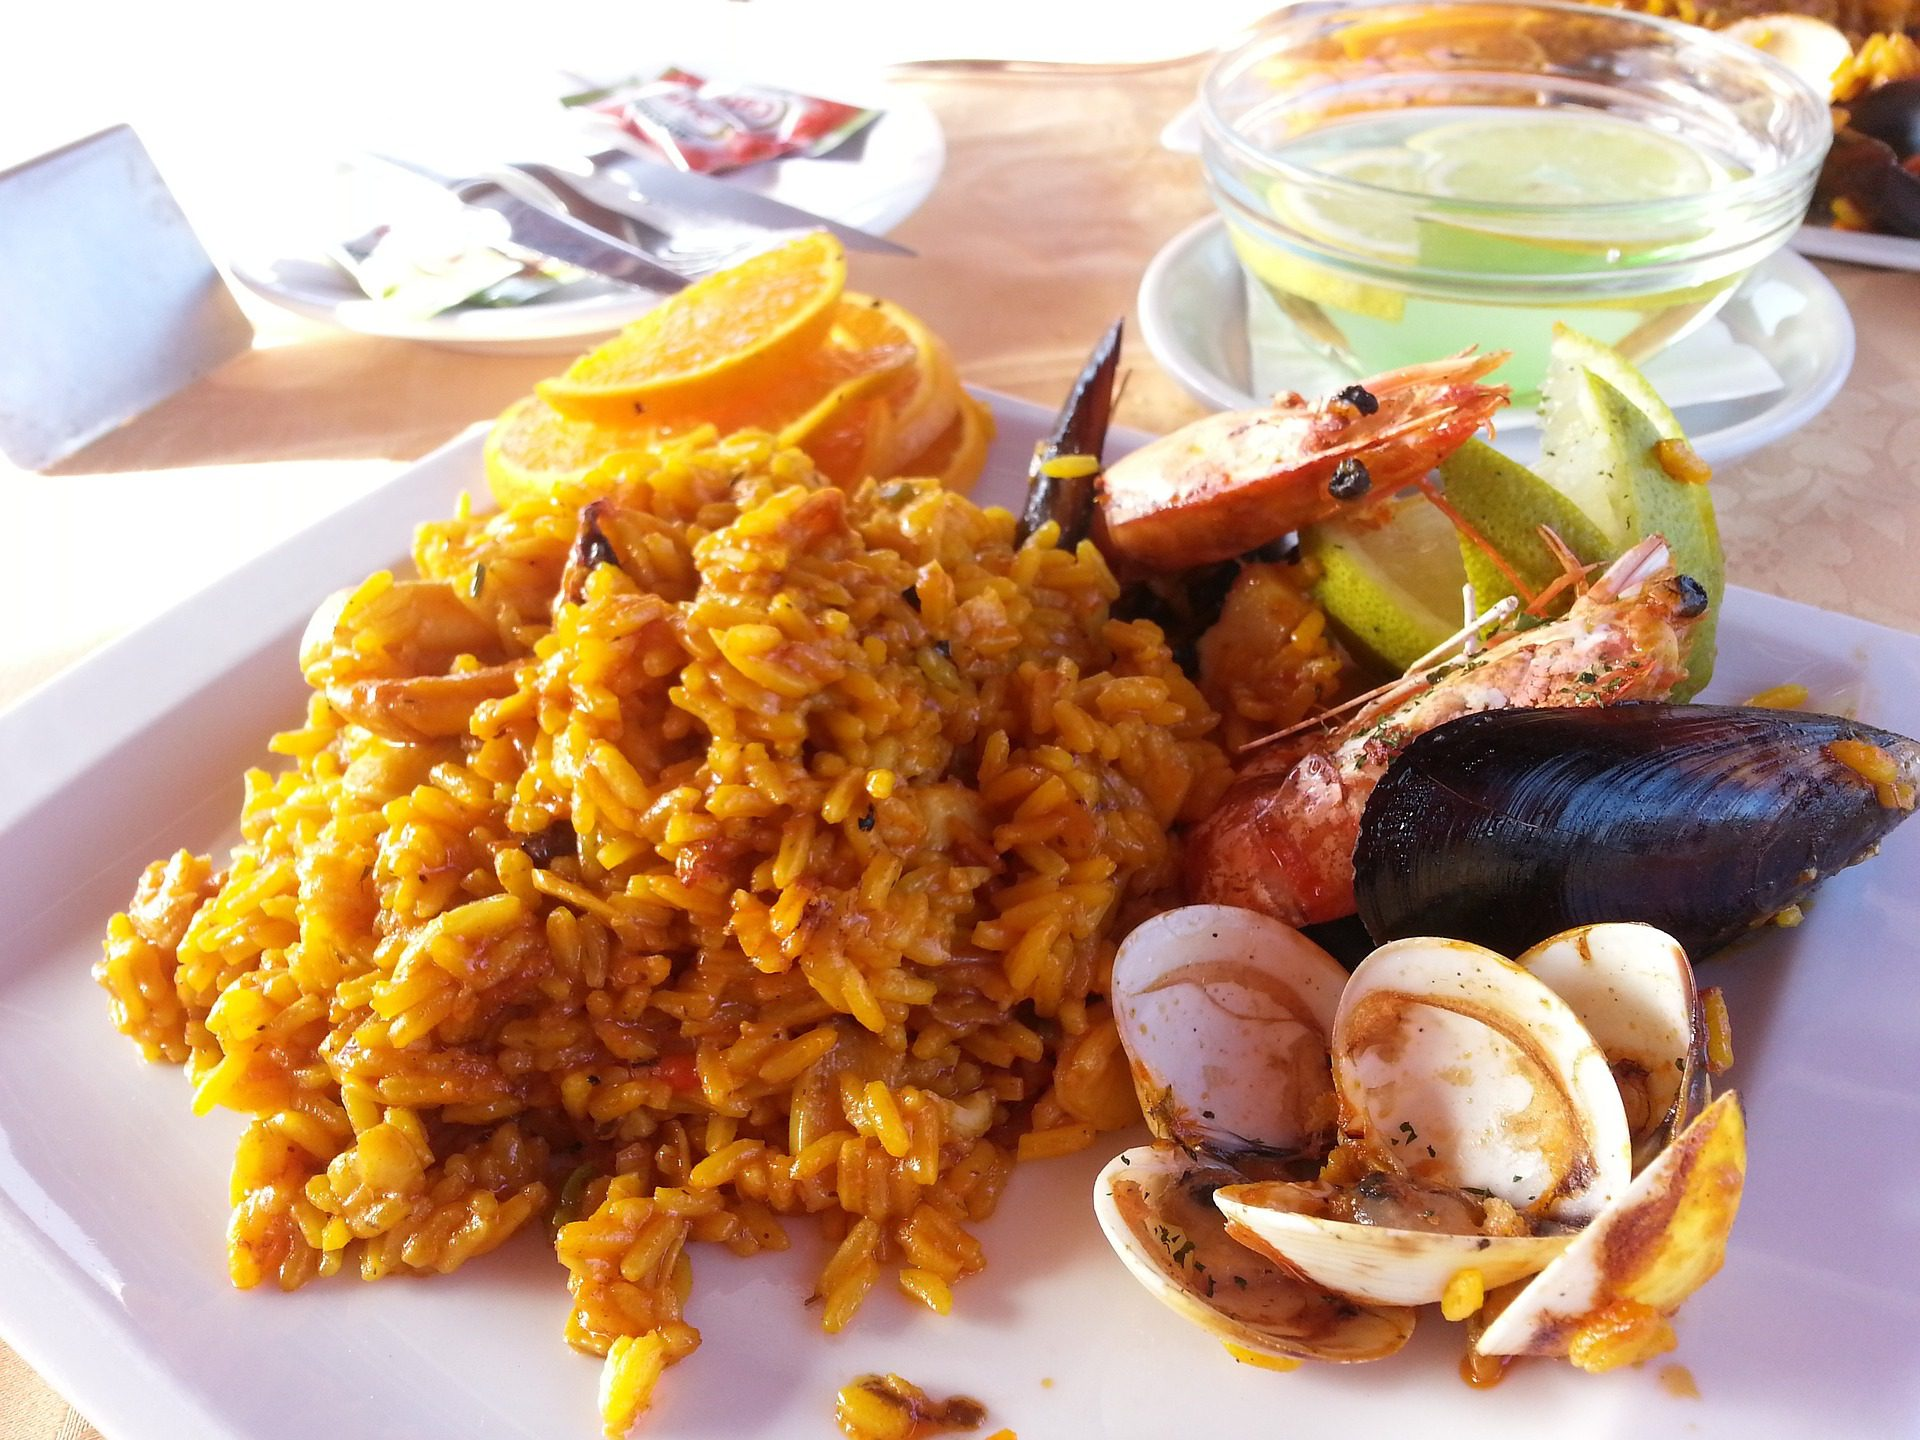 Places to Eat in Barcelona: Find the Best Paella in Barcelona